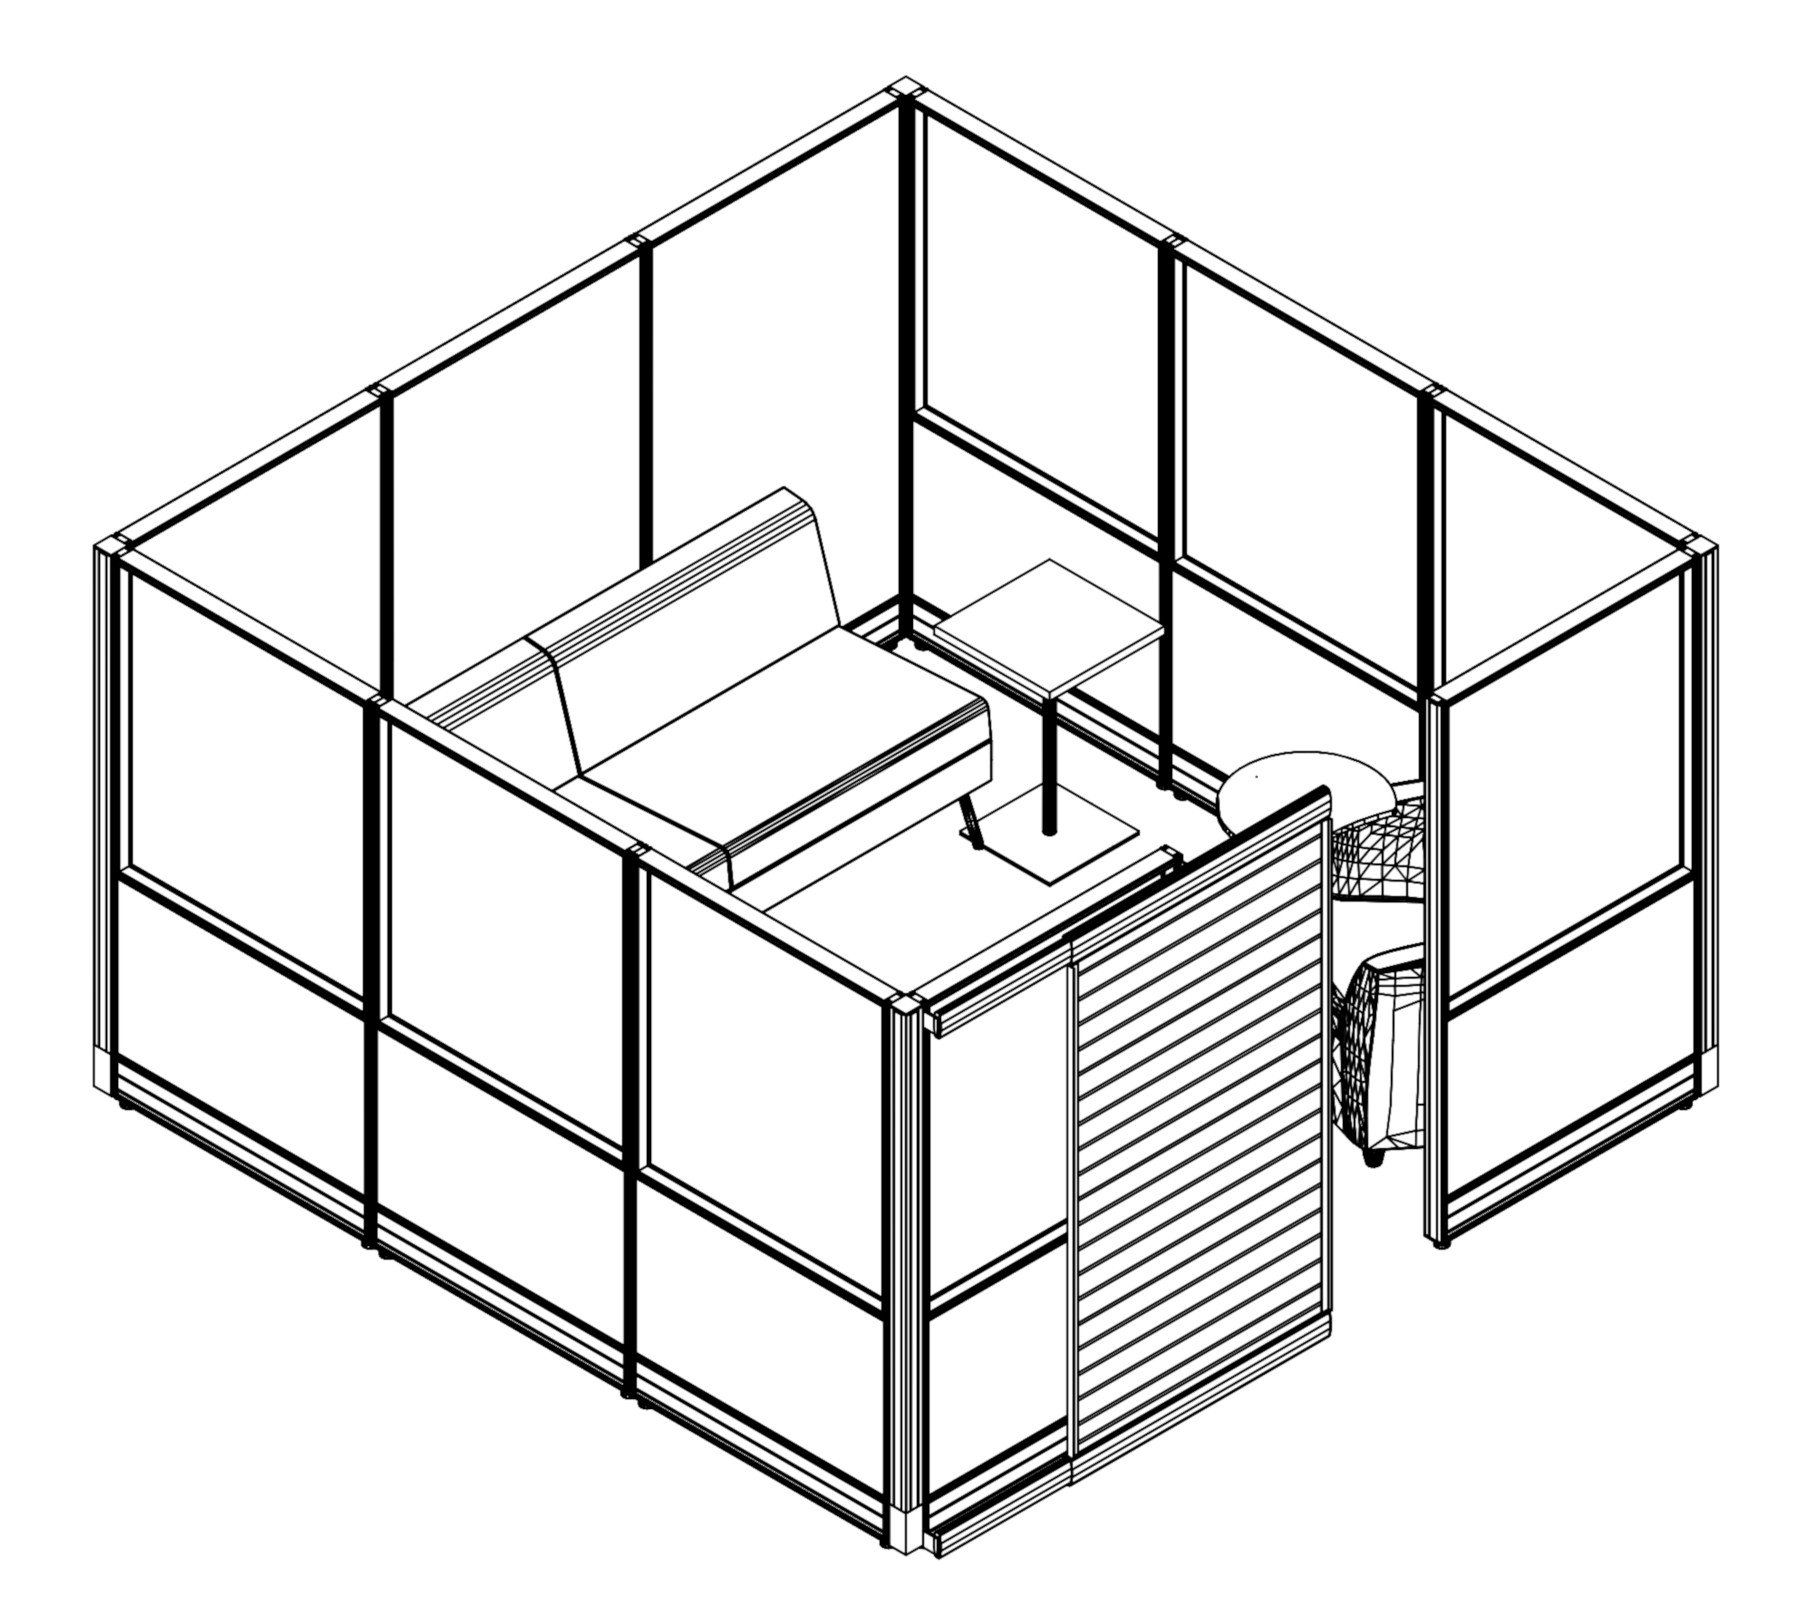 Technical drawing of the Compile CM520 Cubicle. This enclosed cubicle can hold a small team. A door to the right can slide open.